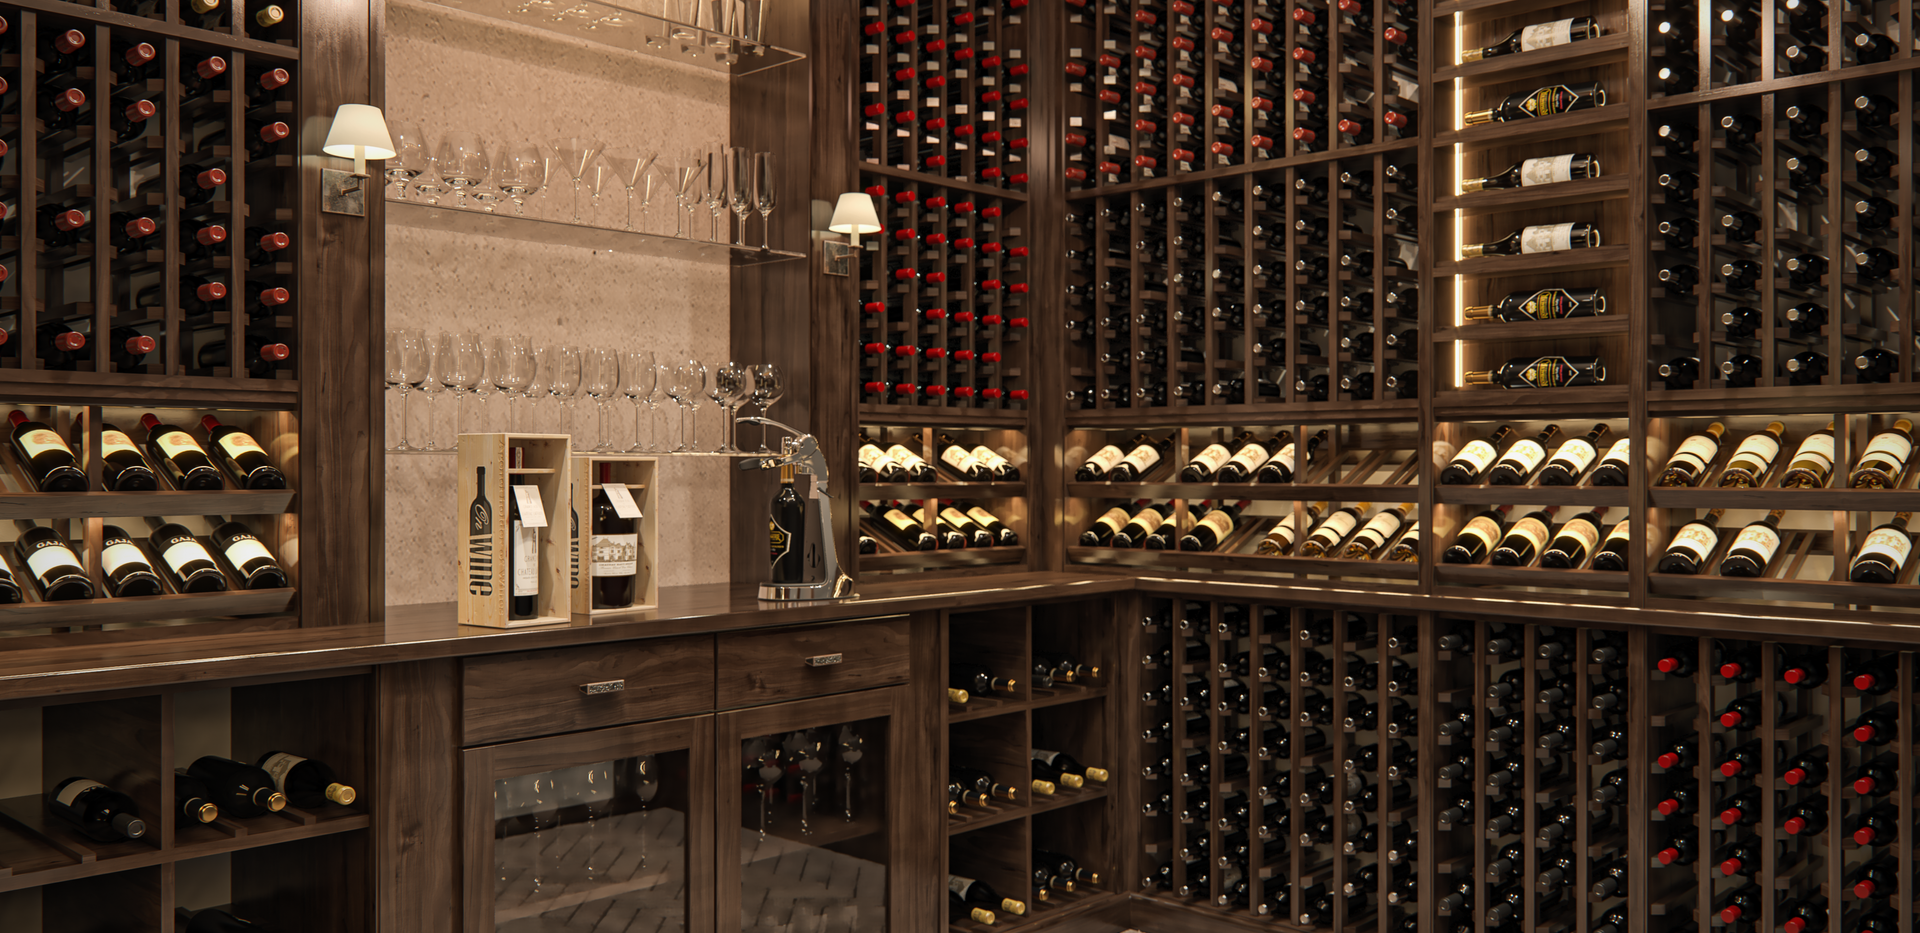 wine cellar view 2.tif